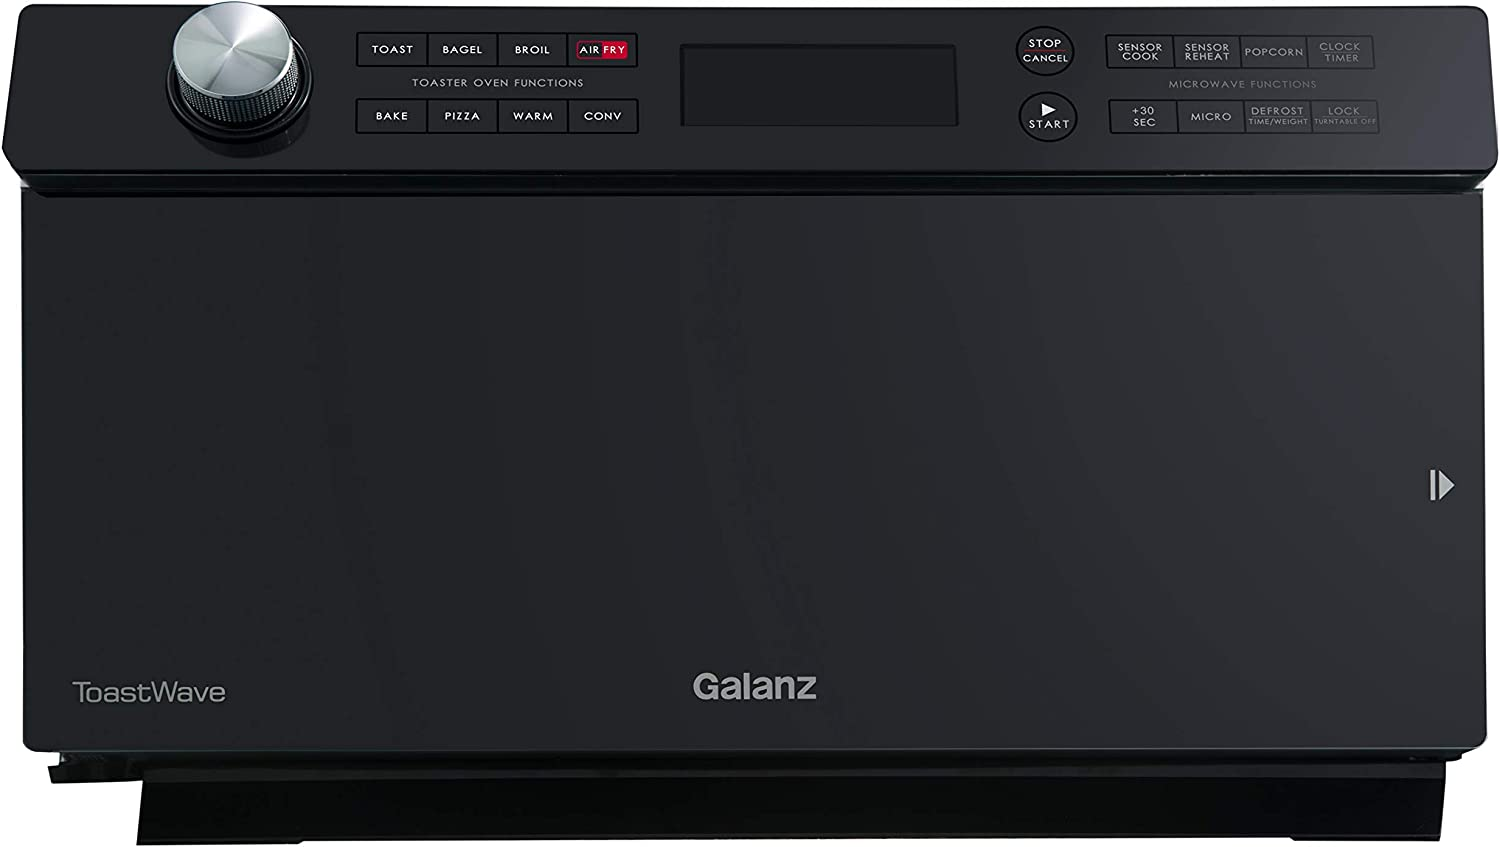 Galanz GTWHG12BKSA10 4-in-1 Multifunctional Air Fry 1000W/1.2 Cu.Ft Convection Oven, LCD Display, Cook, Sensor Reheat, Ergonomic Control Panel, Black